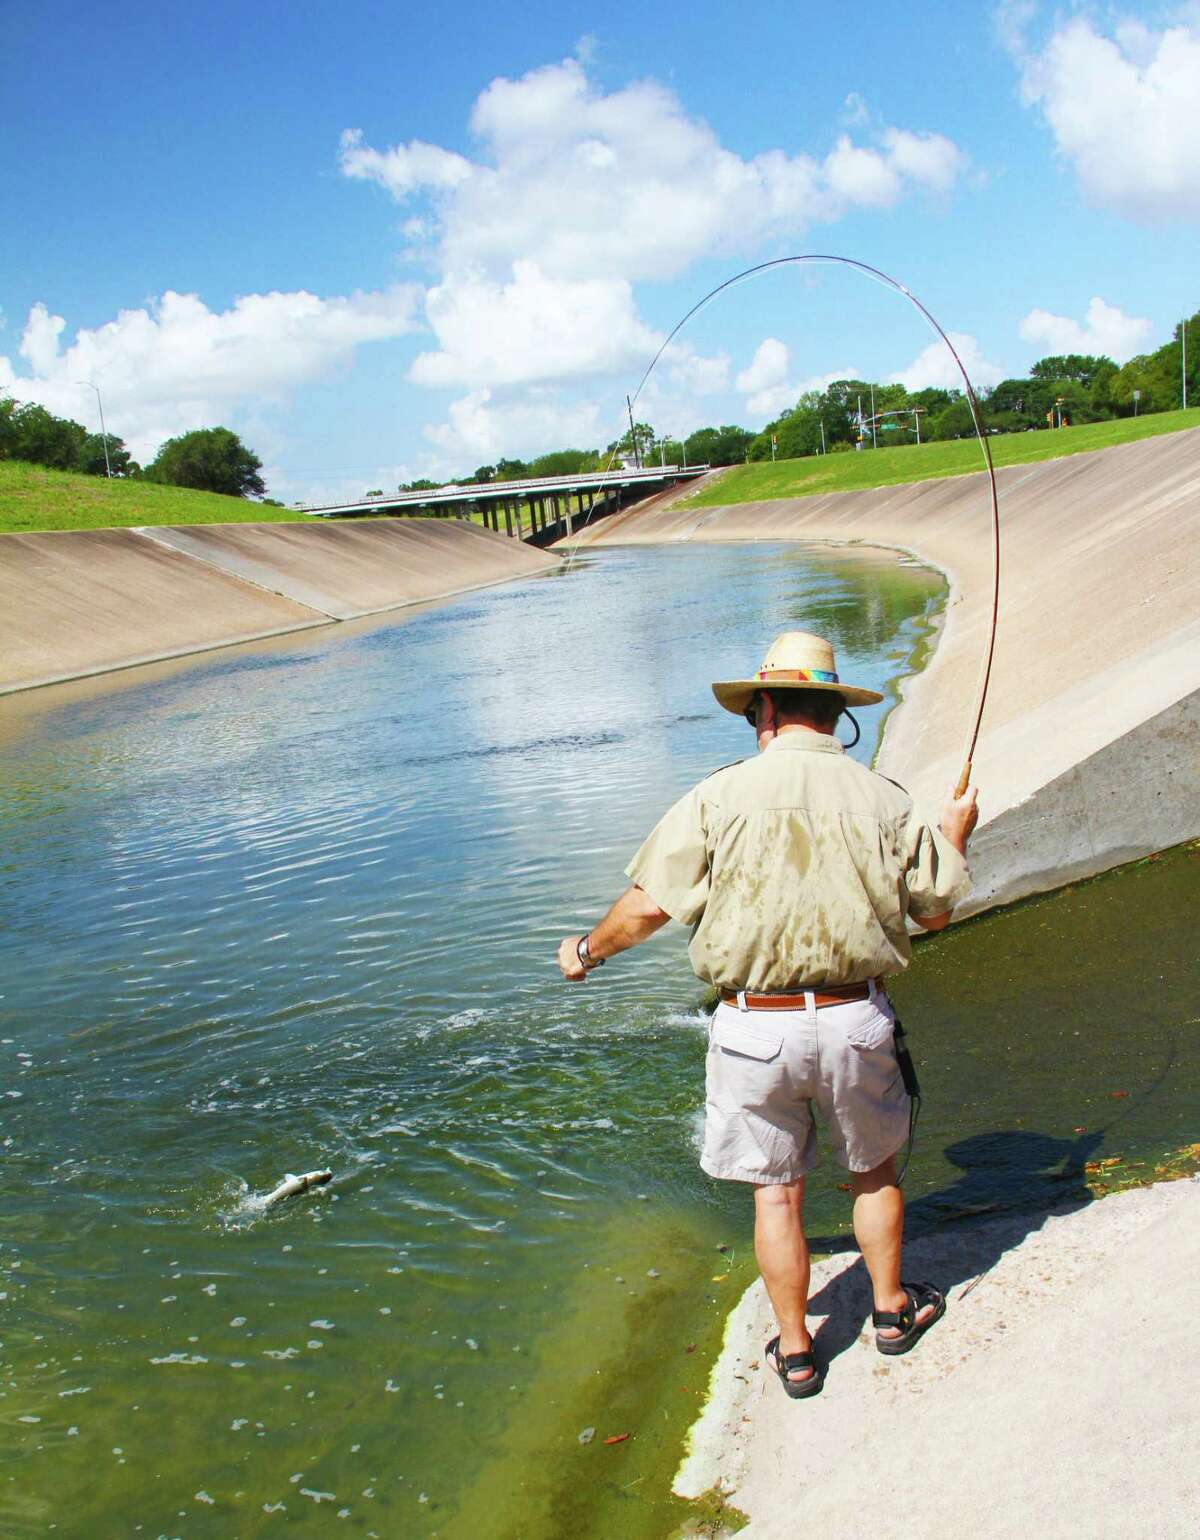 Fly-fisher and fishing guide/instructor Mark Marmon fights an acrobatic striped mullet that slammed a fly worked in the concrete-lined section of Houston's Brays Bayou. Marmon has landed 18 species of fish from the city's urban waterways.